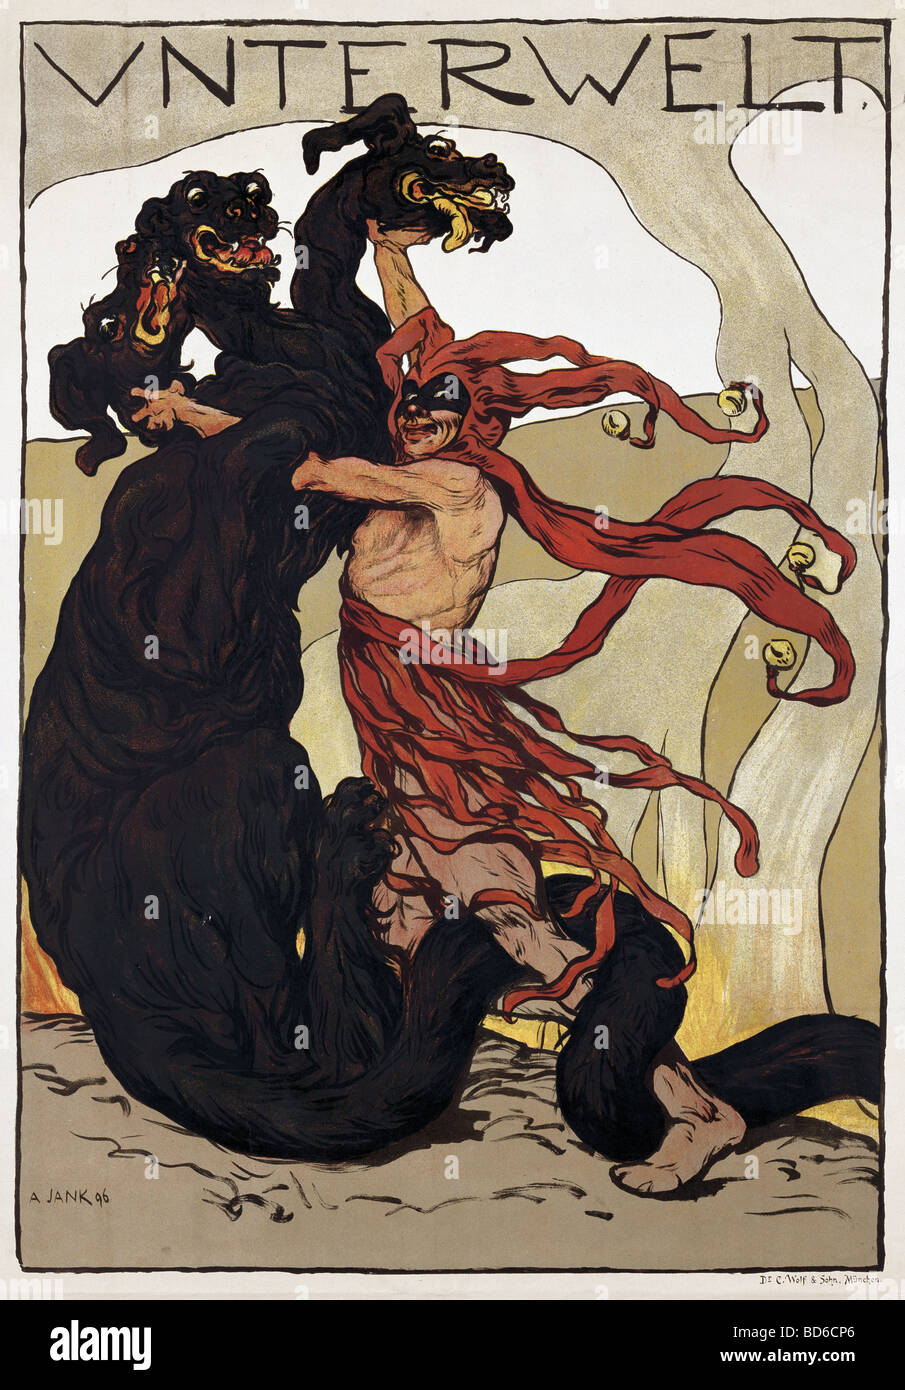 fine arts, Jank, Angelo (30.10.1884 - 9.10.1940), poster 'Unterwelt' (Hades), 1896, printed by C. Wolf and - Stock Image